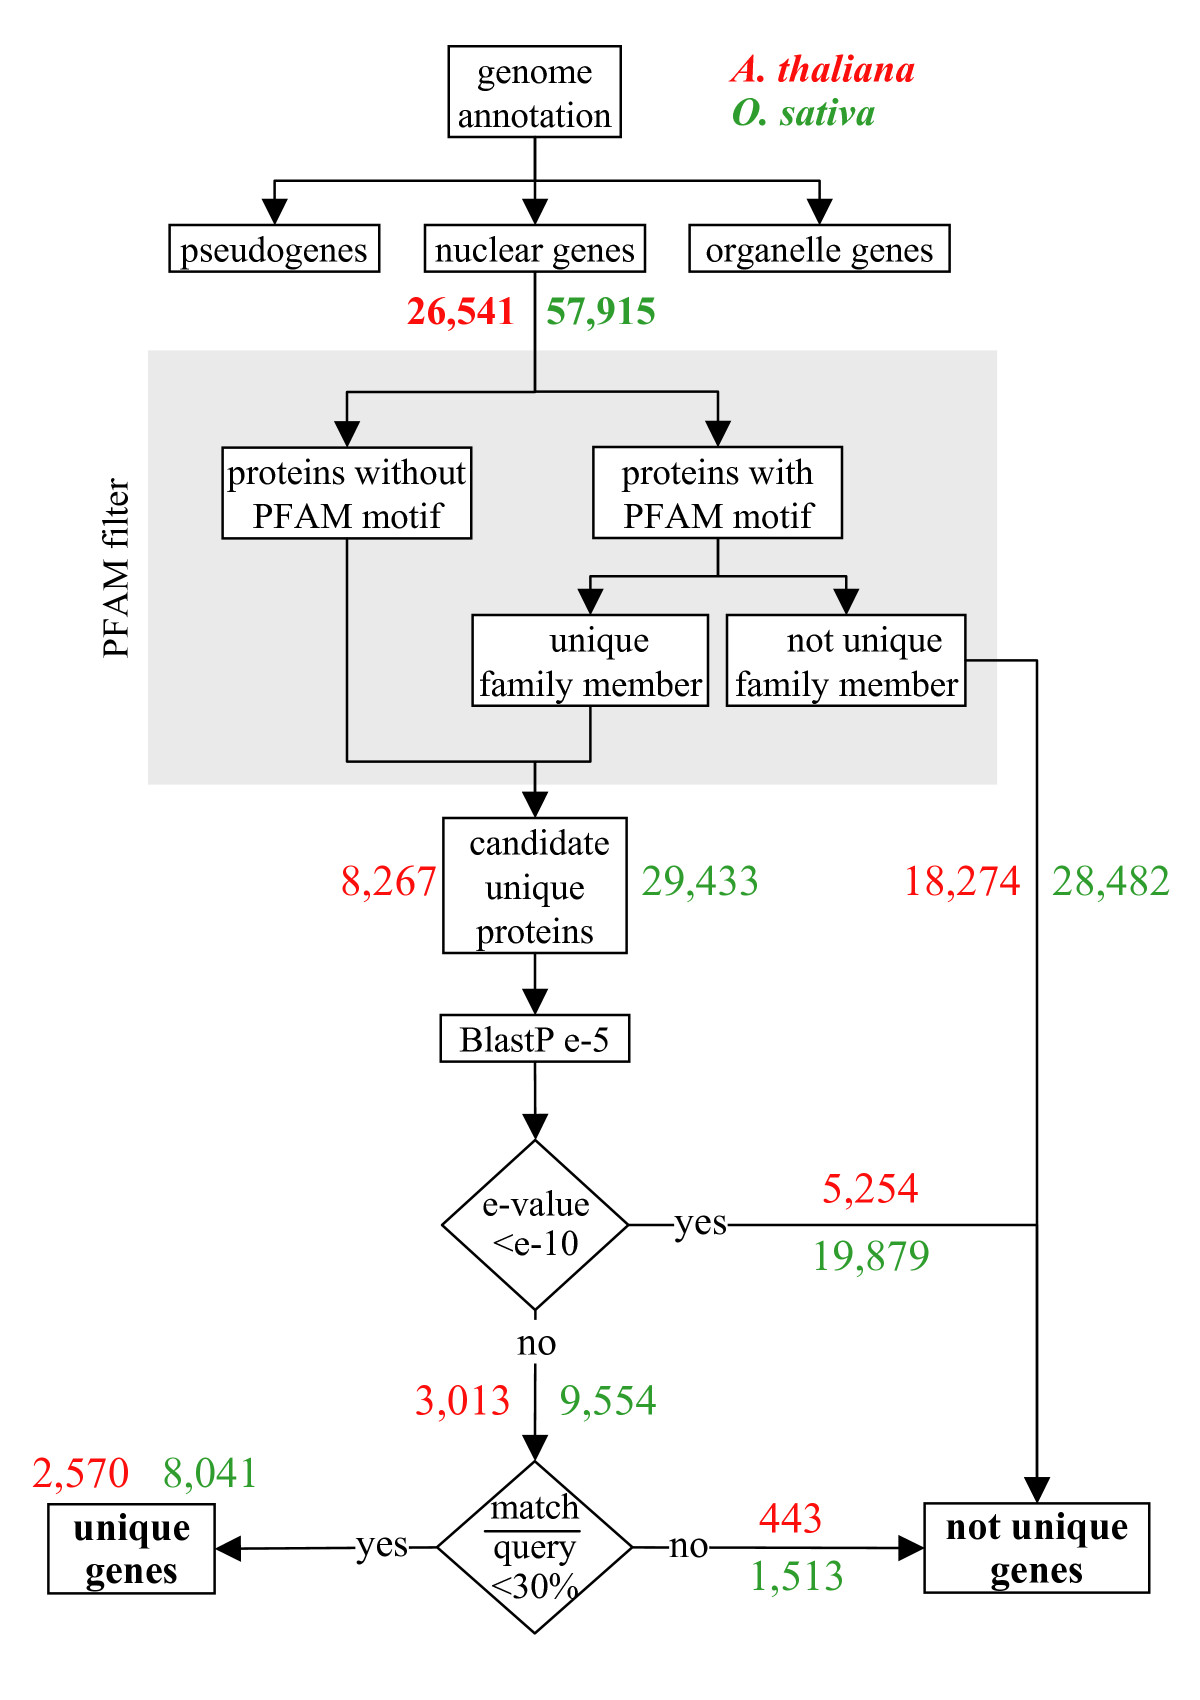 http://static-content.springer.com/image/art%3A10.1186%2F1471-2148-8-280/MediaObjects/12862_2008_Article_849_Fig1_HTML.jpg